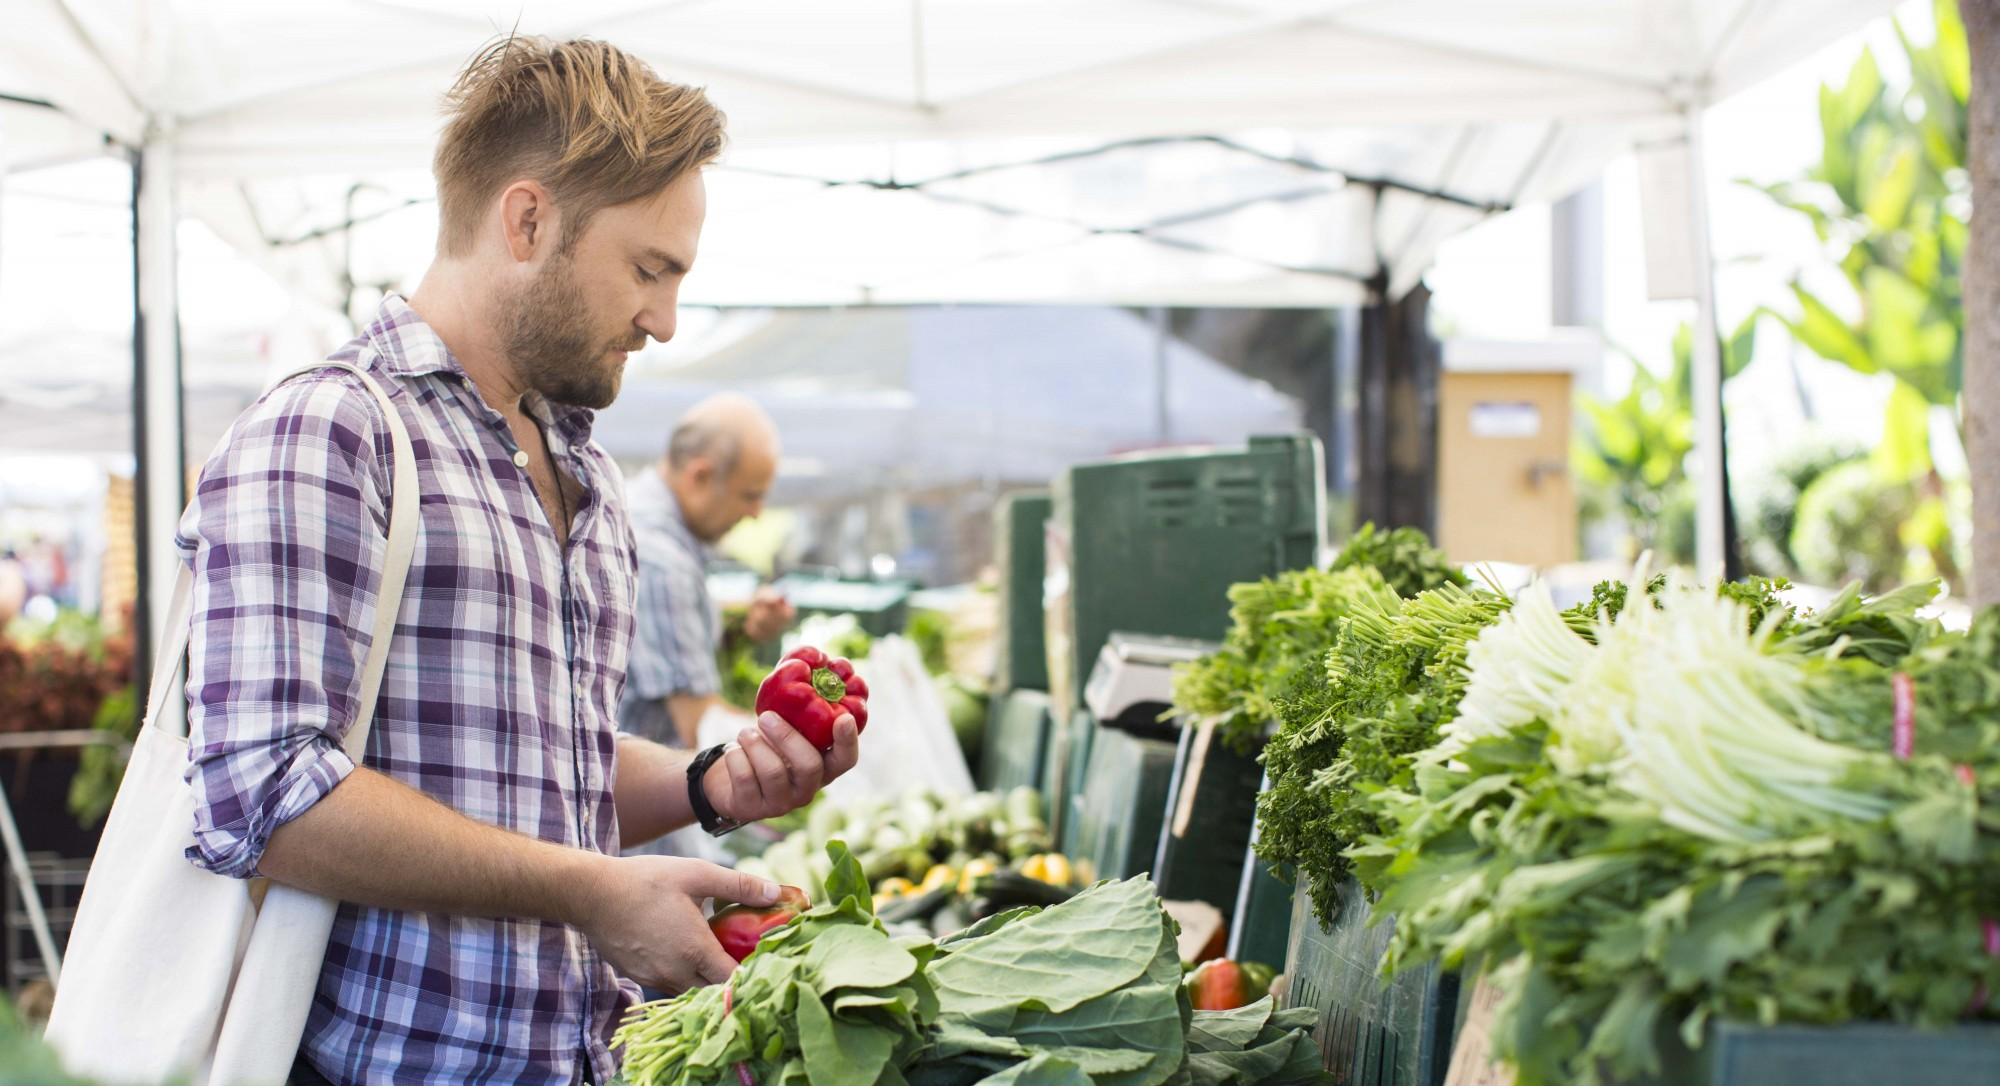 Not Your Grandma's Groceries: 4 Ways Farmers Markets Are Going High-Tech